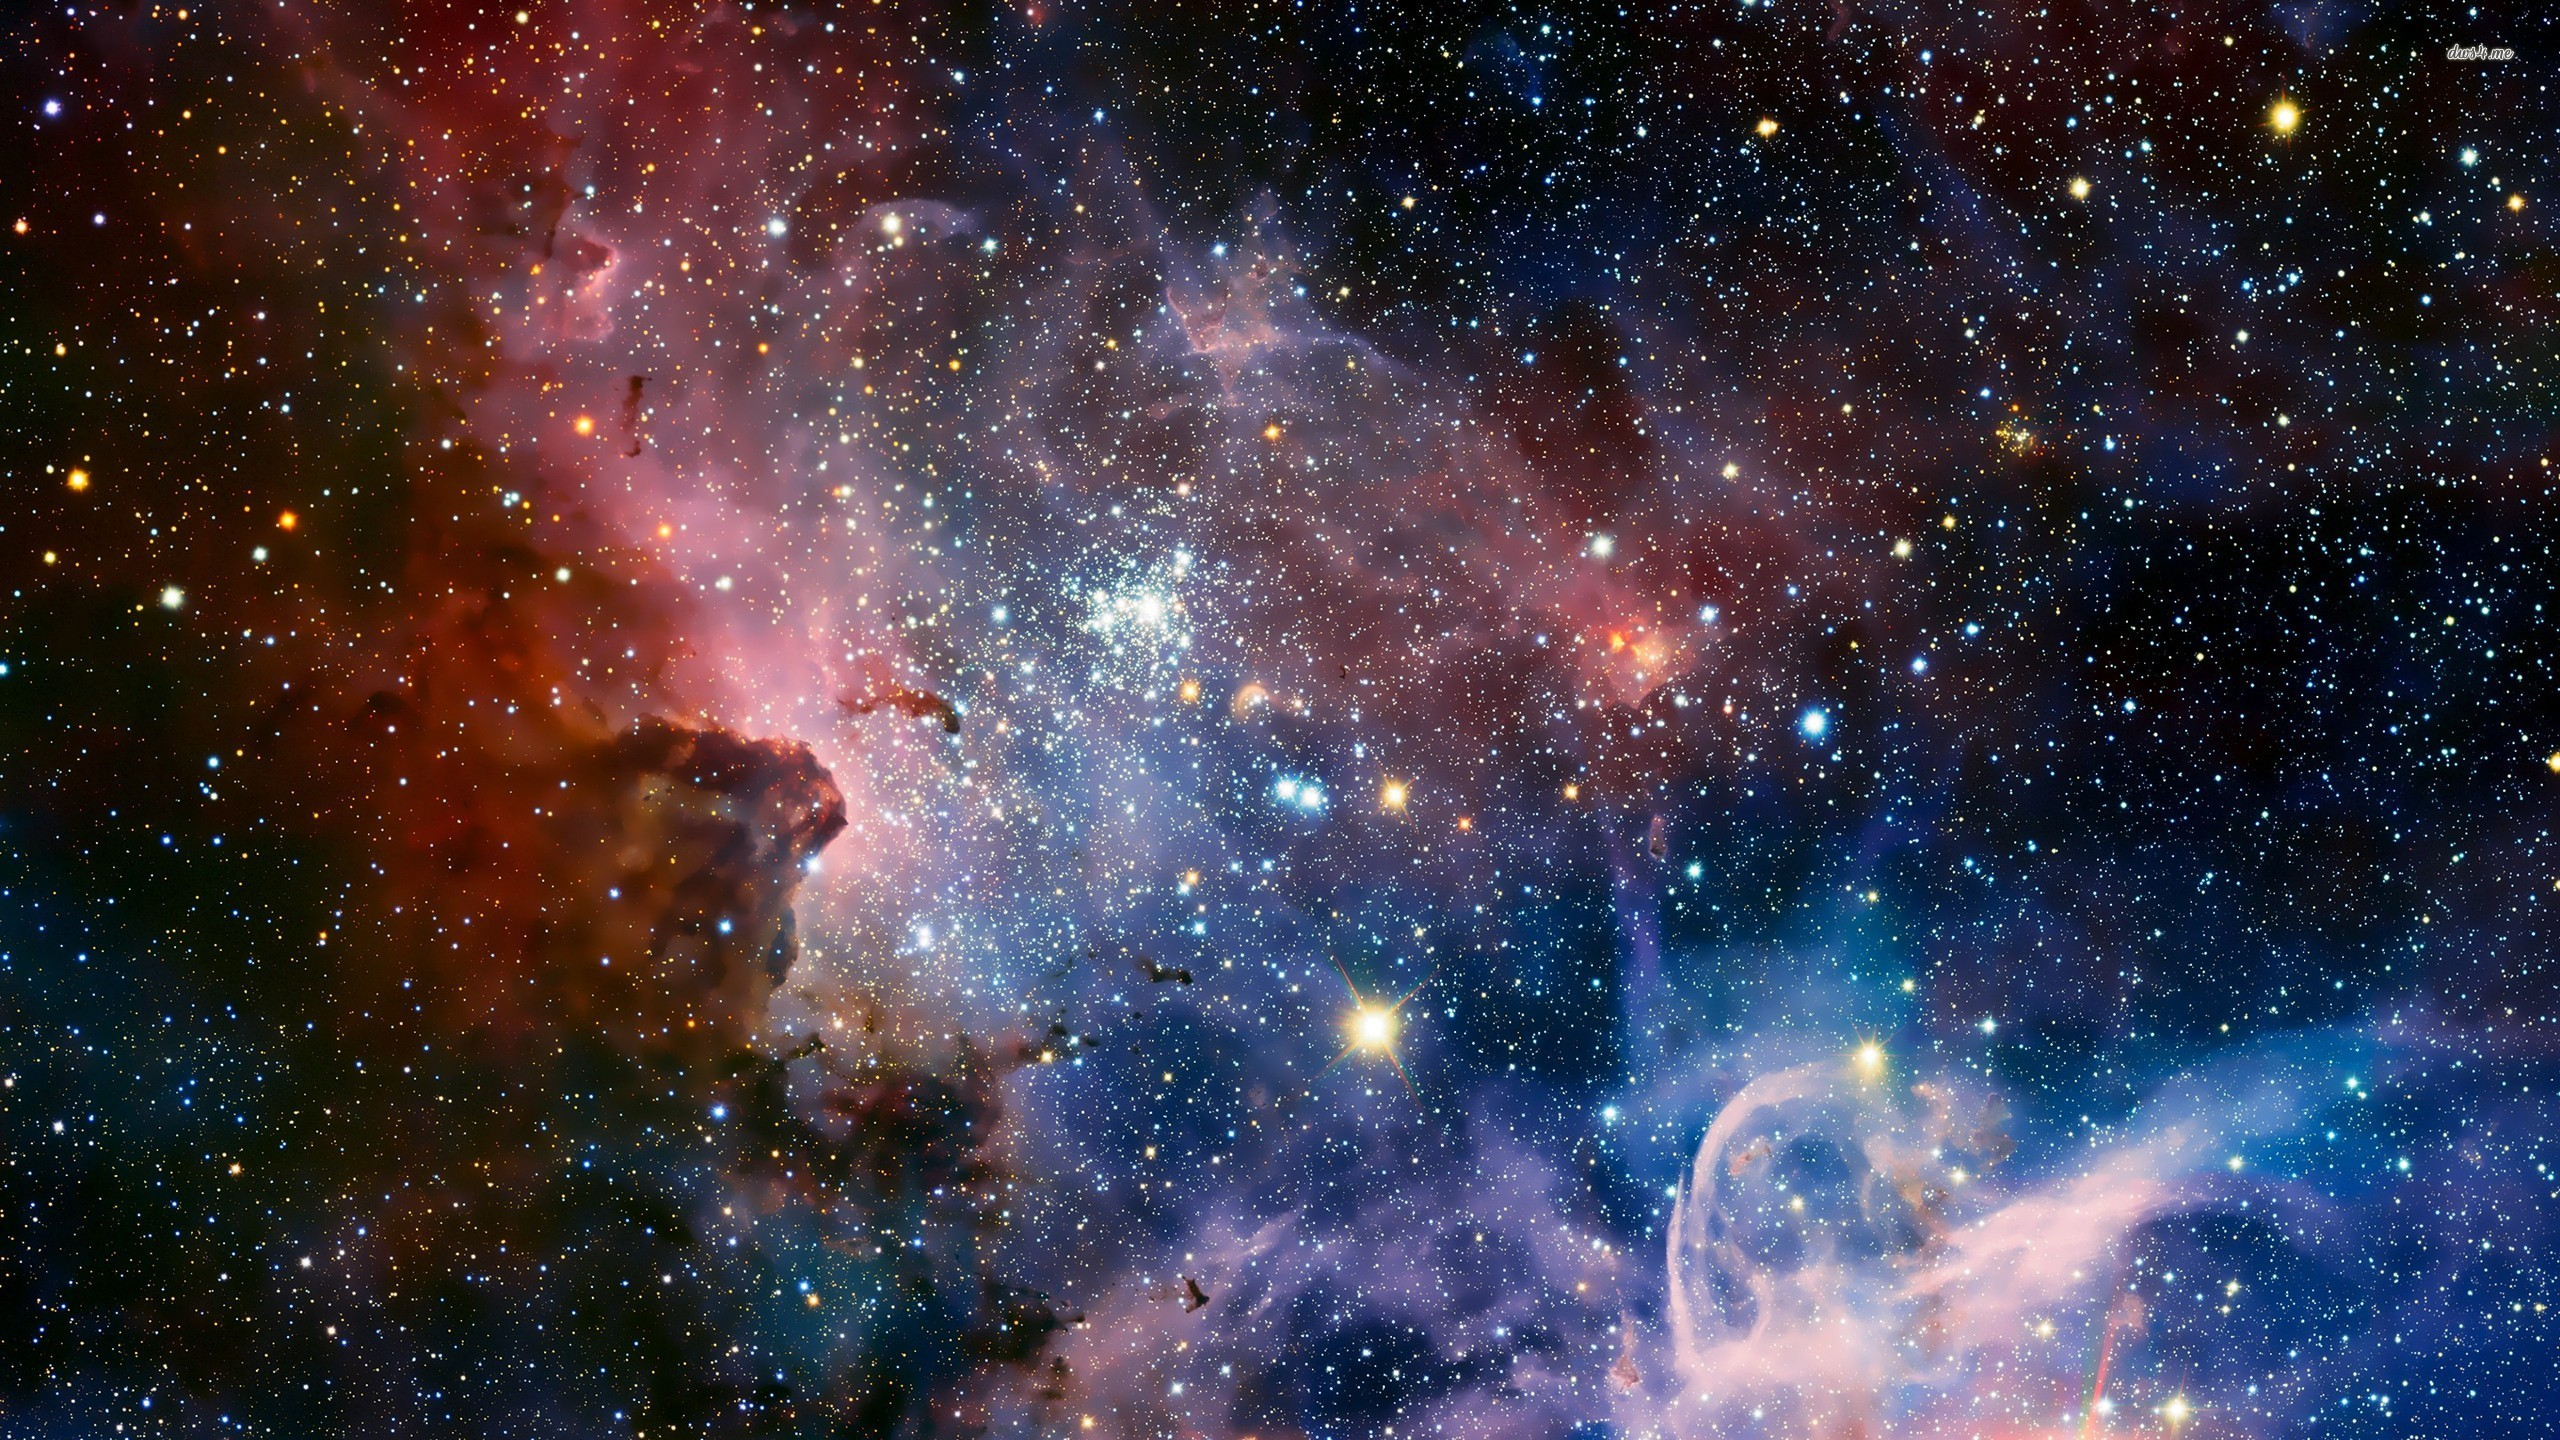 Space Wallpapers. Original Resolution px